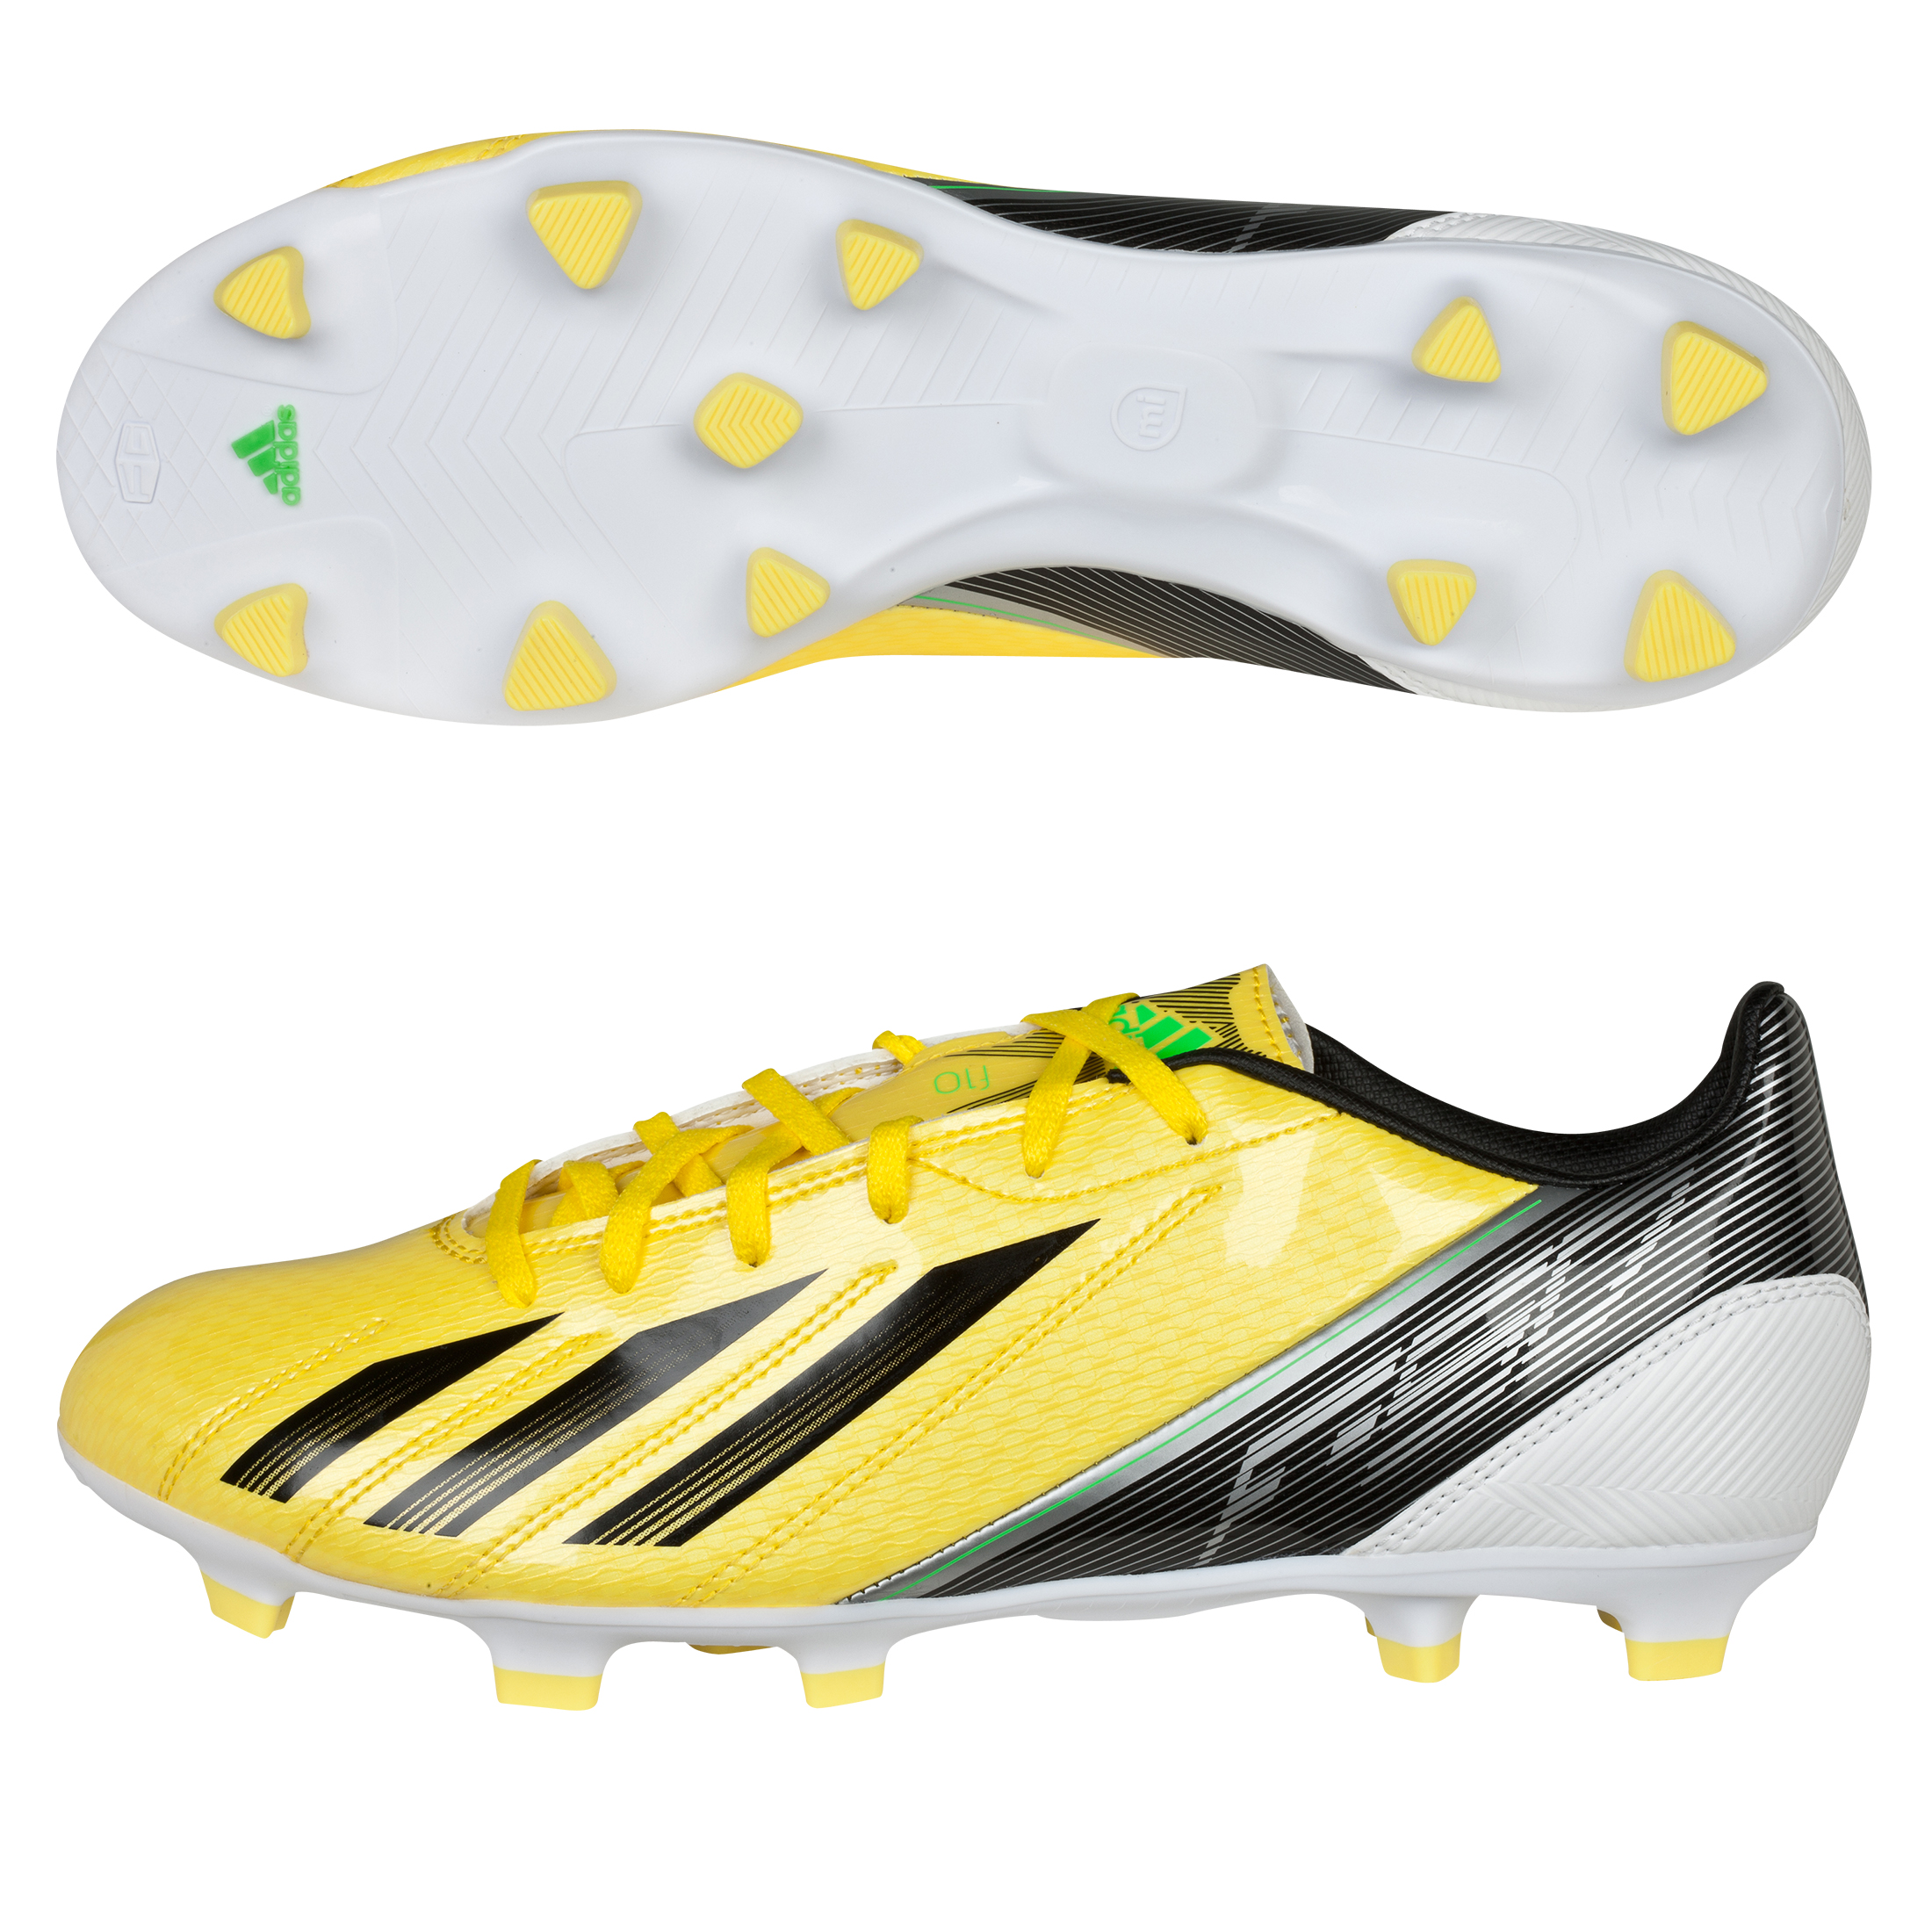 adidas Adizero F10 TRX Firm Ground Football Boots - Vivid Yellow/Black/Green Zest